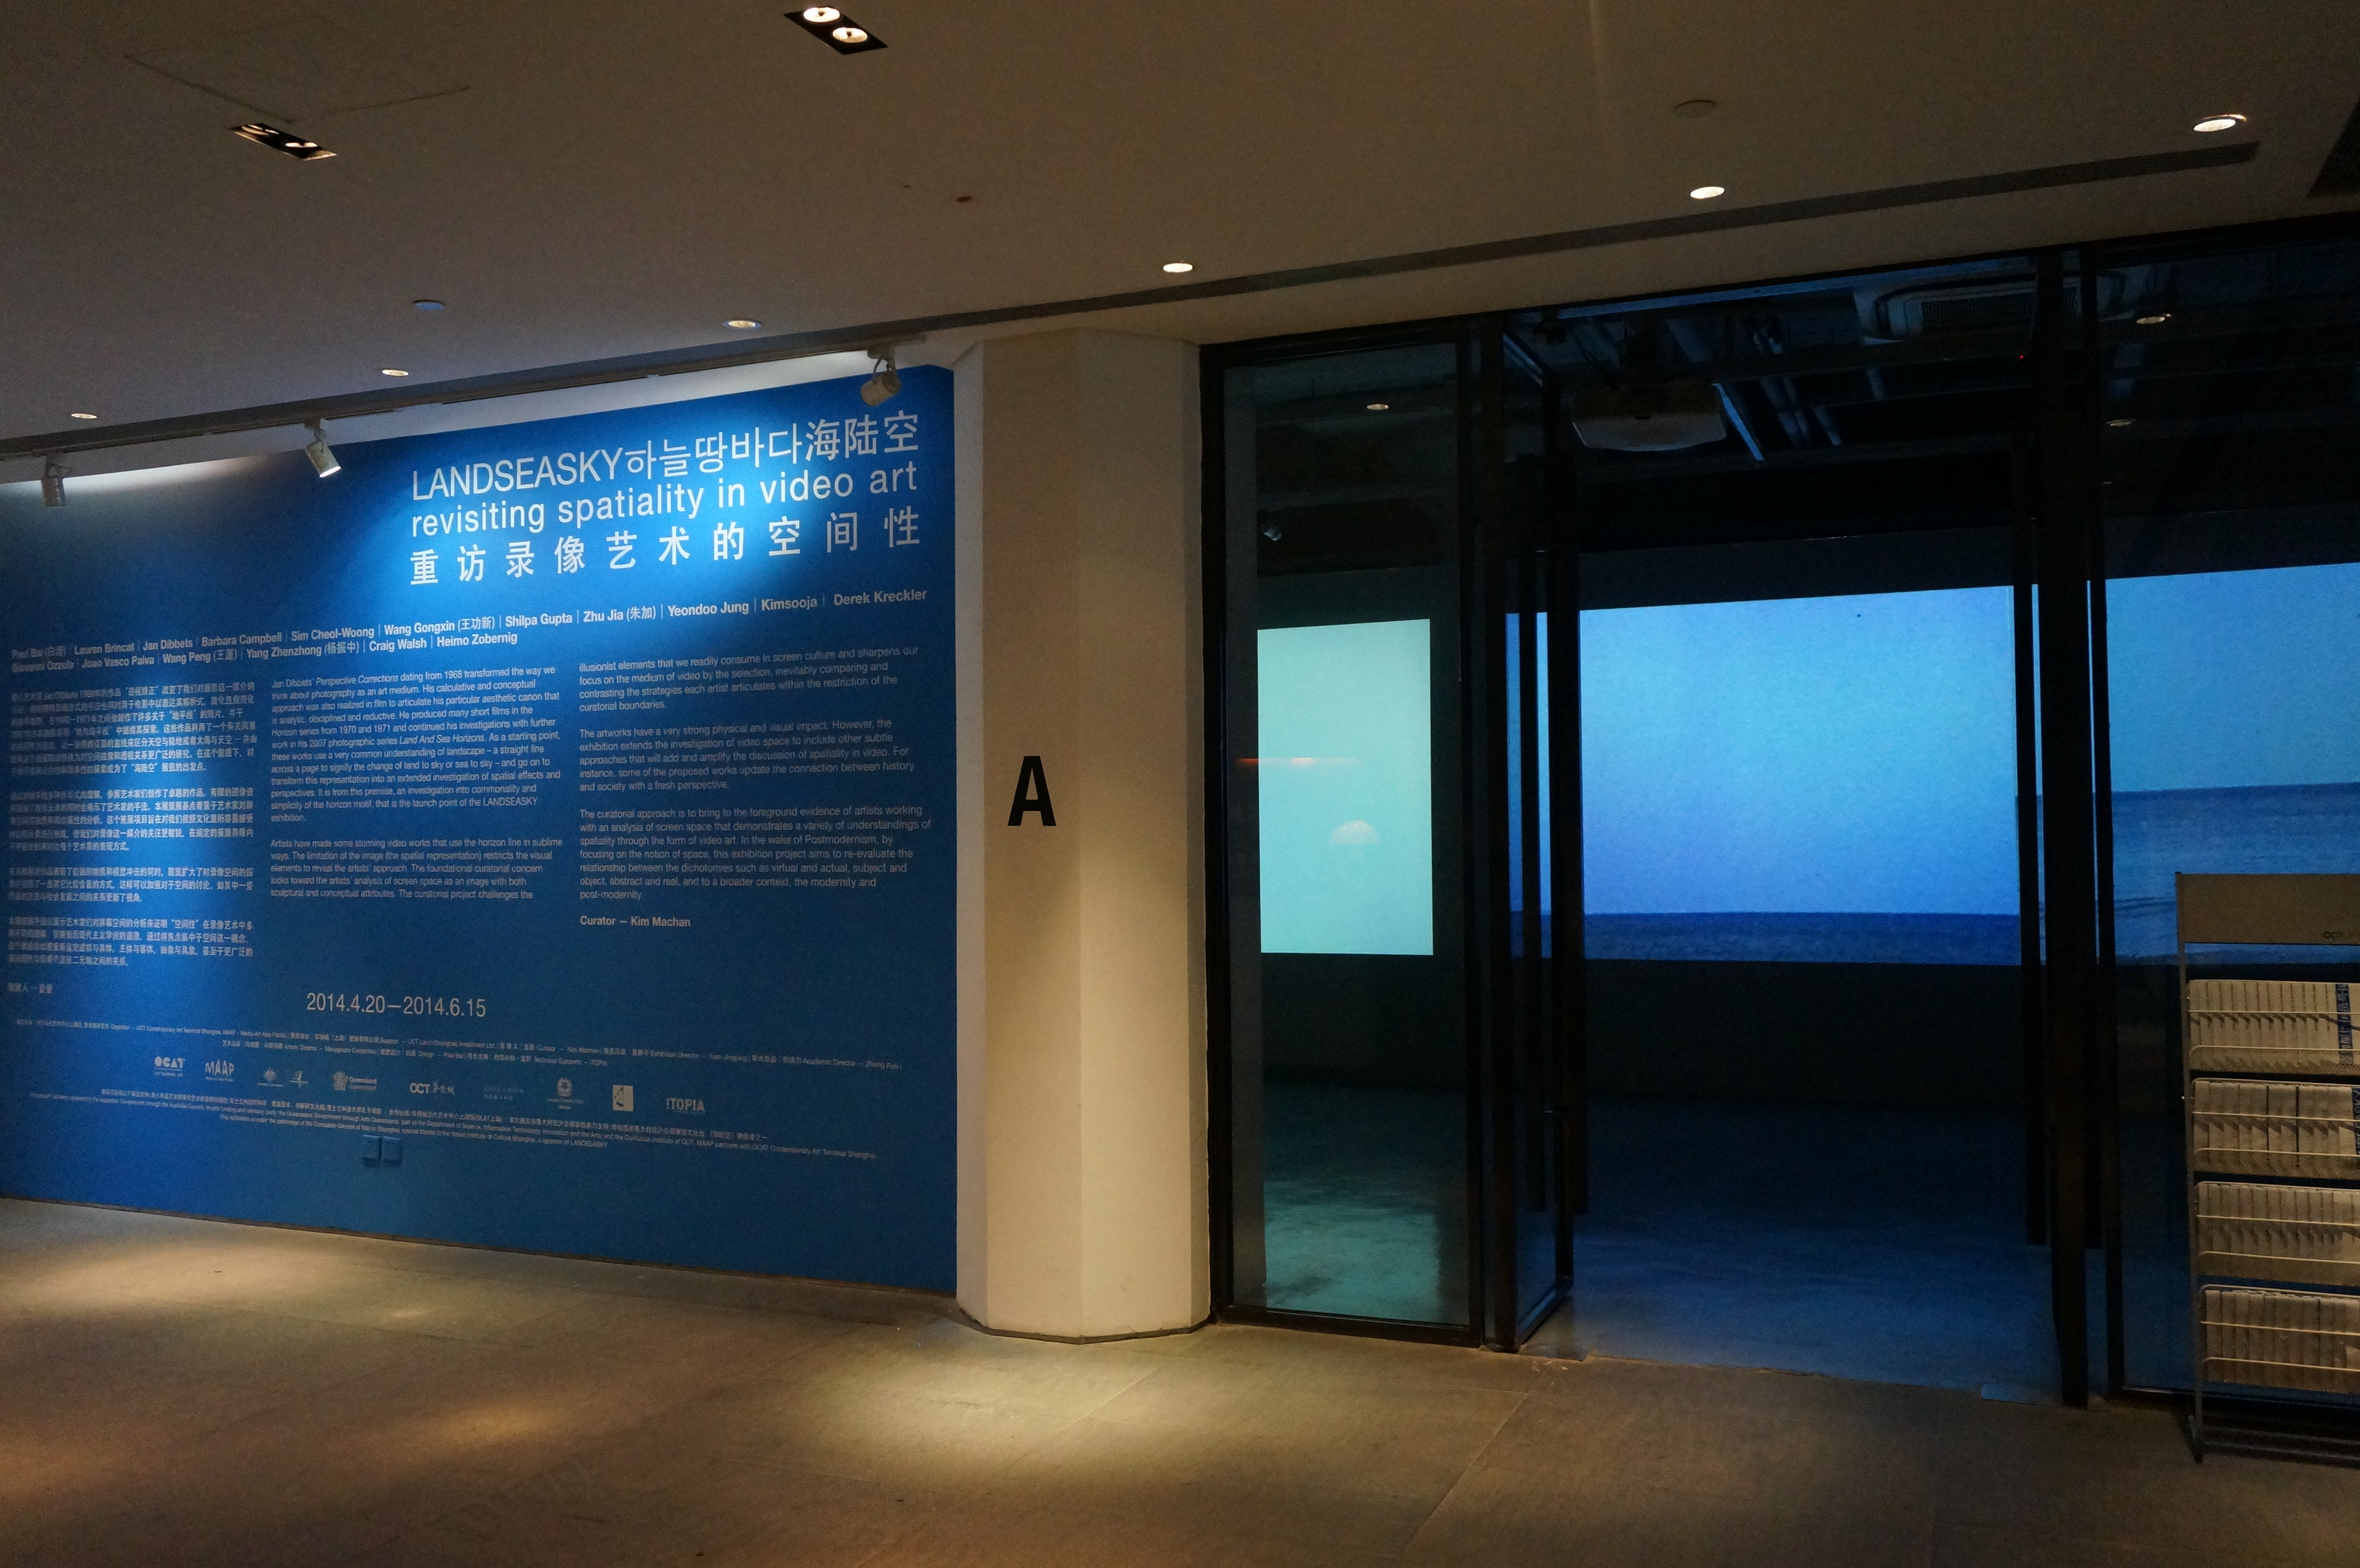 OCT-Contemporary Art Terminal Shanghai - entry to LANDSEASKY:revisiting spatiality in video art